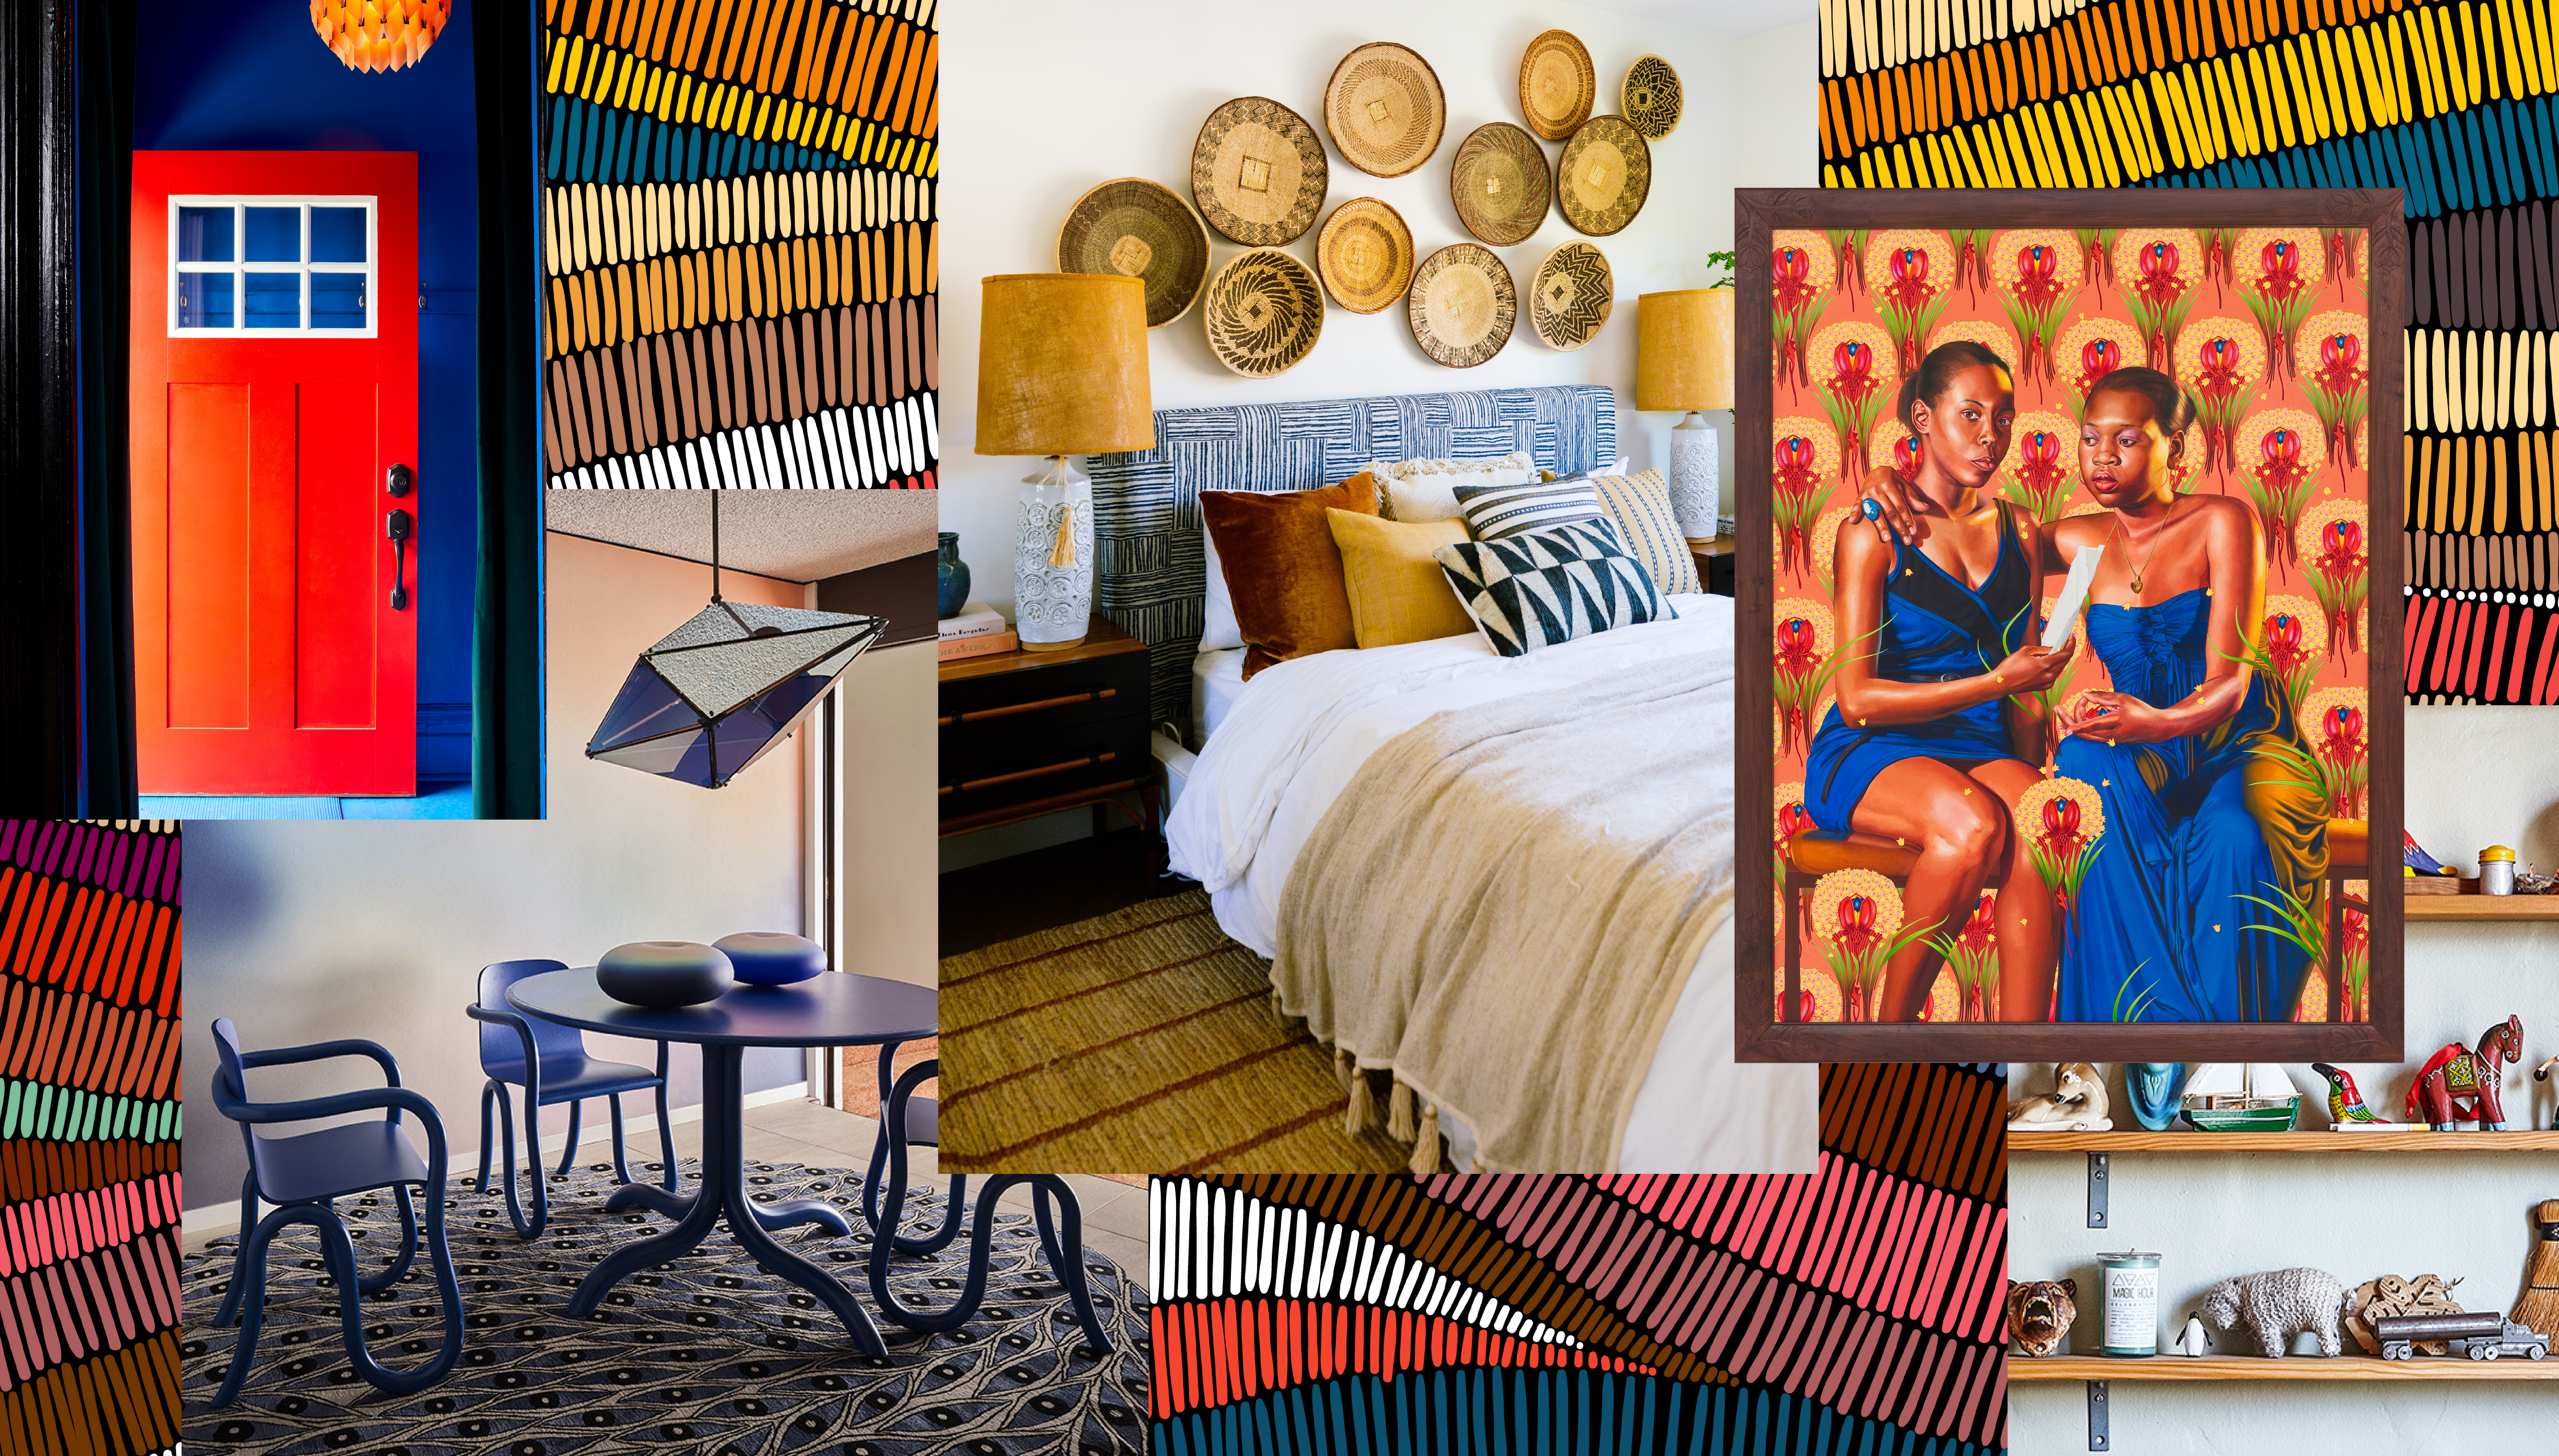 A collage of images including a red door on a blue house; a dining room with a blue table and chairs, blue rug, and gradient wallpaper; a bedroom with a group of baskets mounted above a blue headboard; and a painting of two girls set against a decorative backdrop.